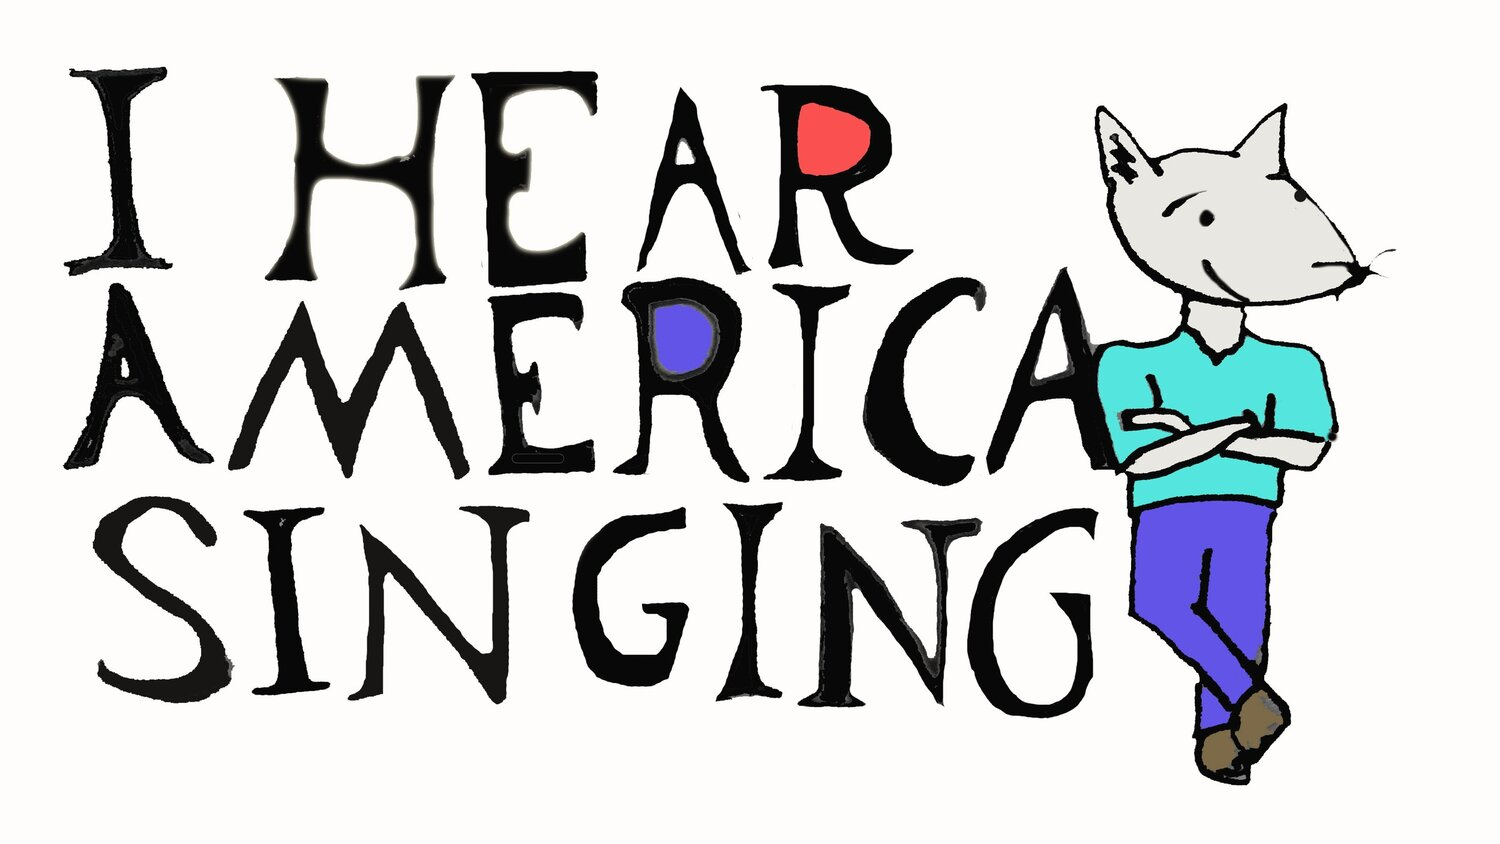 work — I Hear America Singing